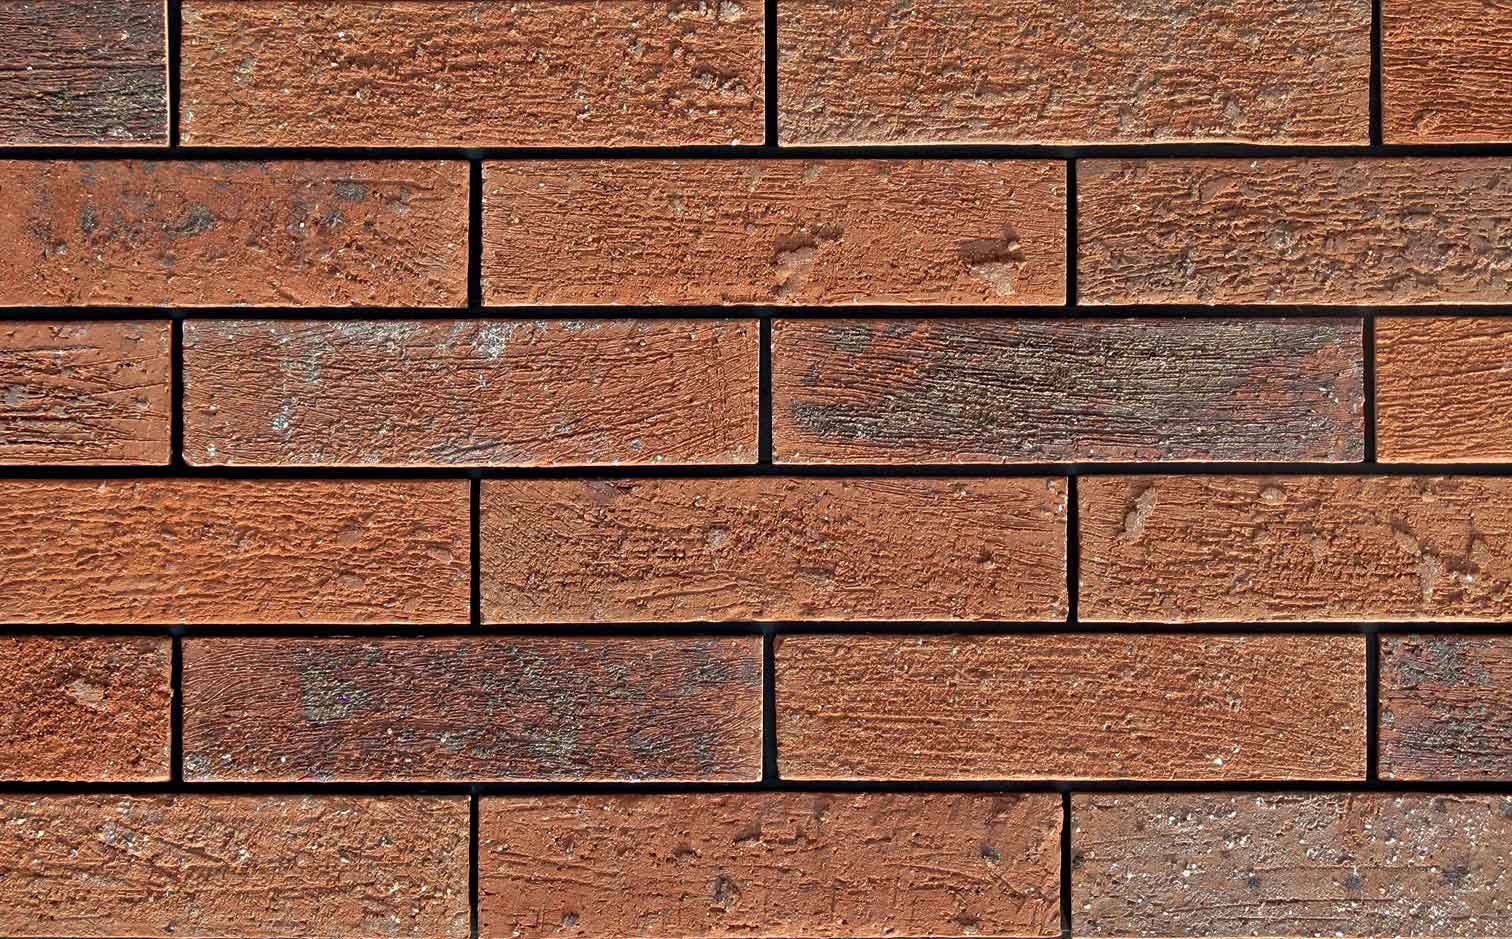 Clay Tile Wall Brick Wrs6107 Lopo China Terracotta Facade Panel Manufacturer